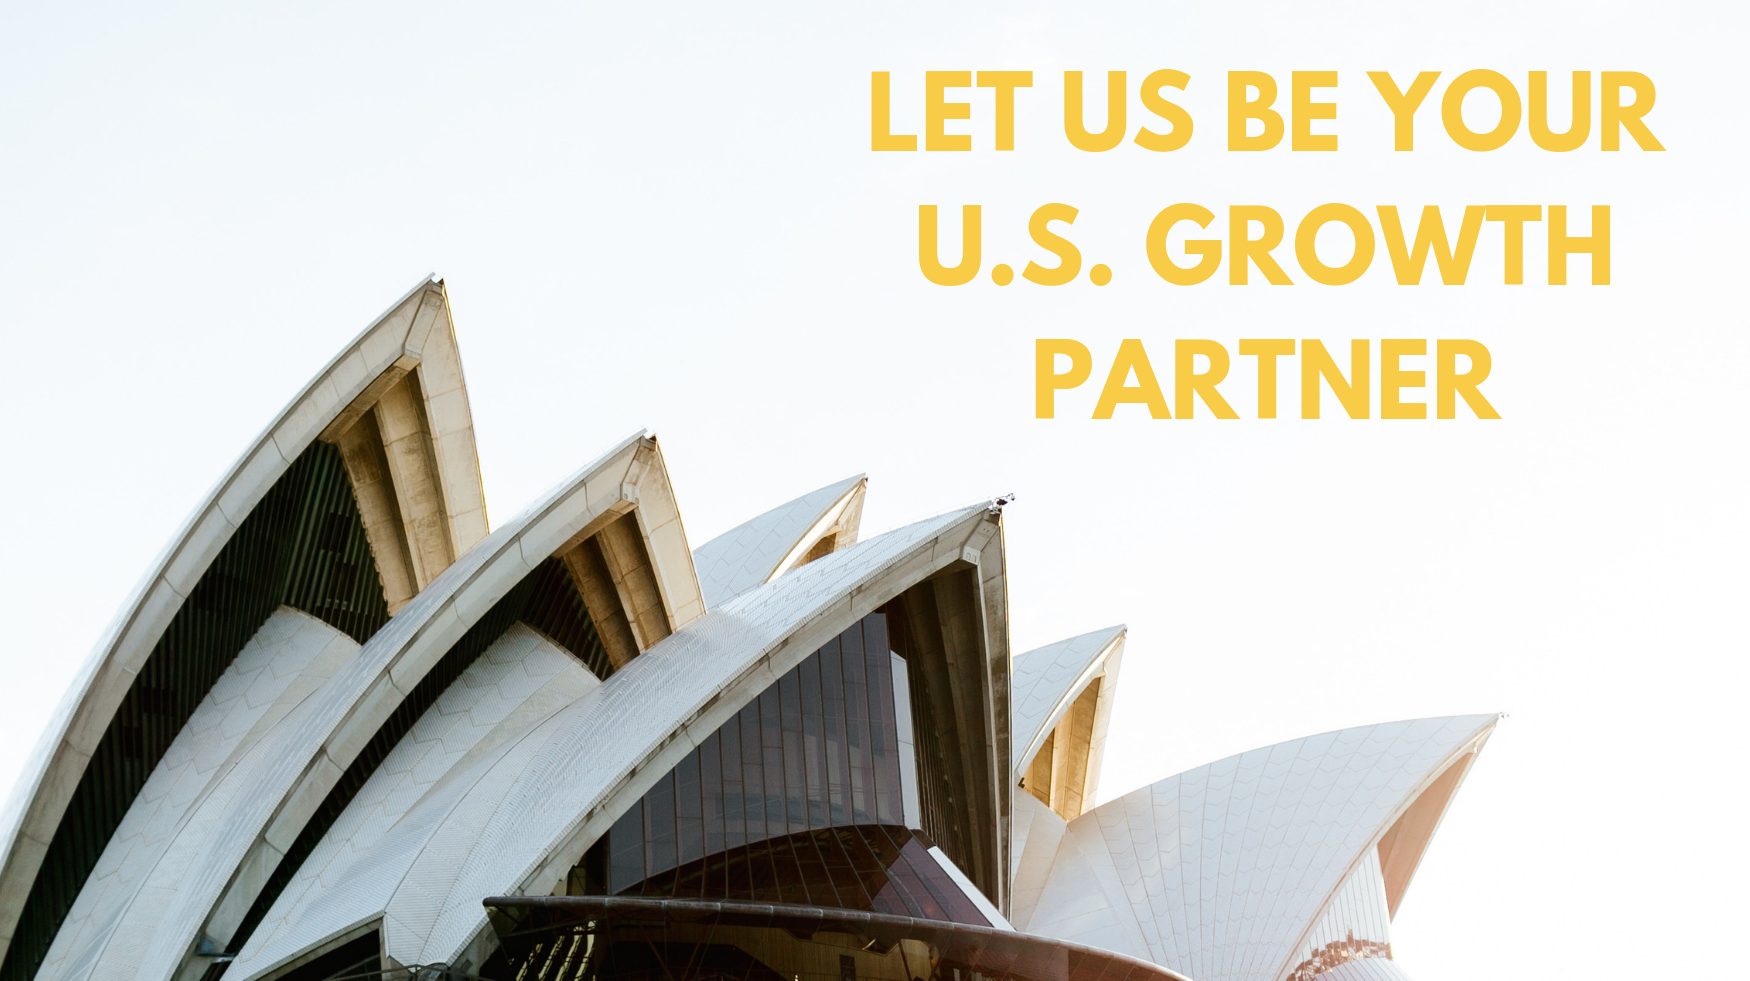 LET US BE YOUR U.S. GROWTH PARTNER